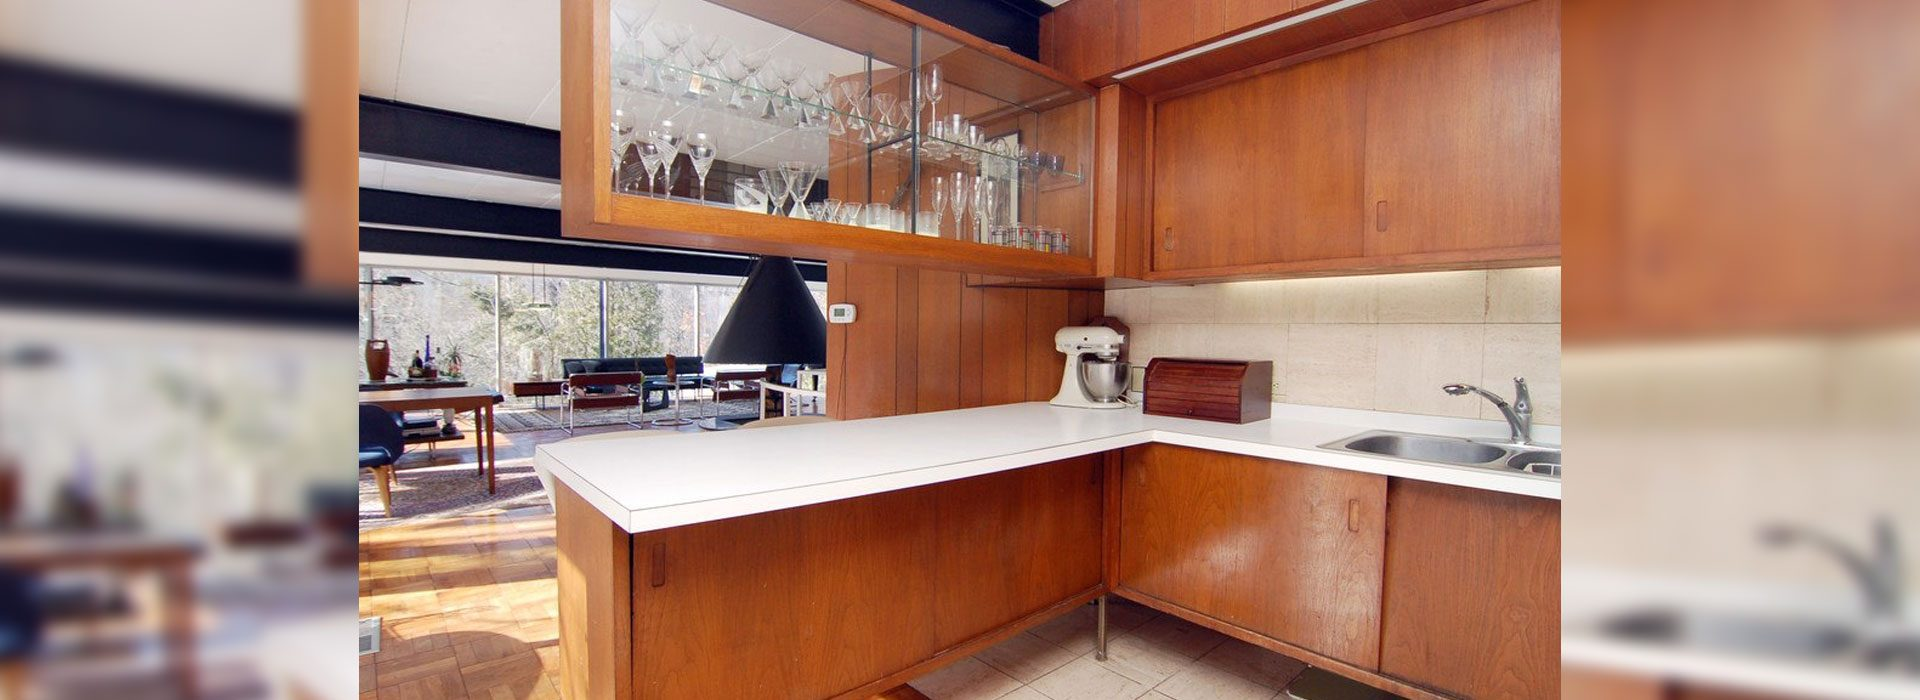 Cabinet Glass & Shelves | Residential Glass Products | Anchor-Ventana Glass Company